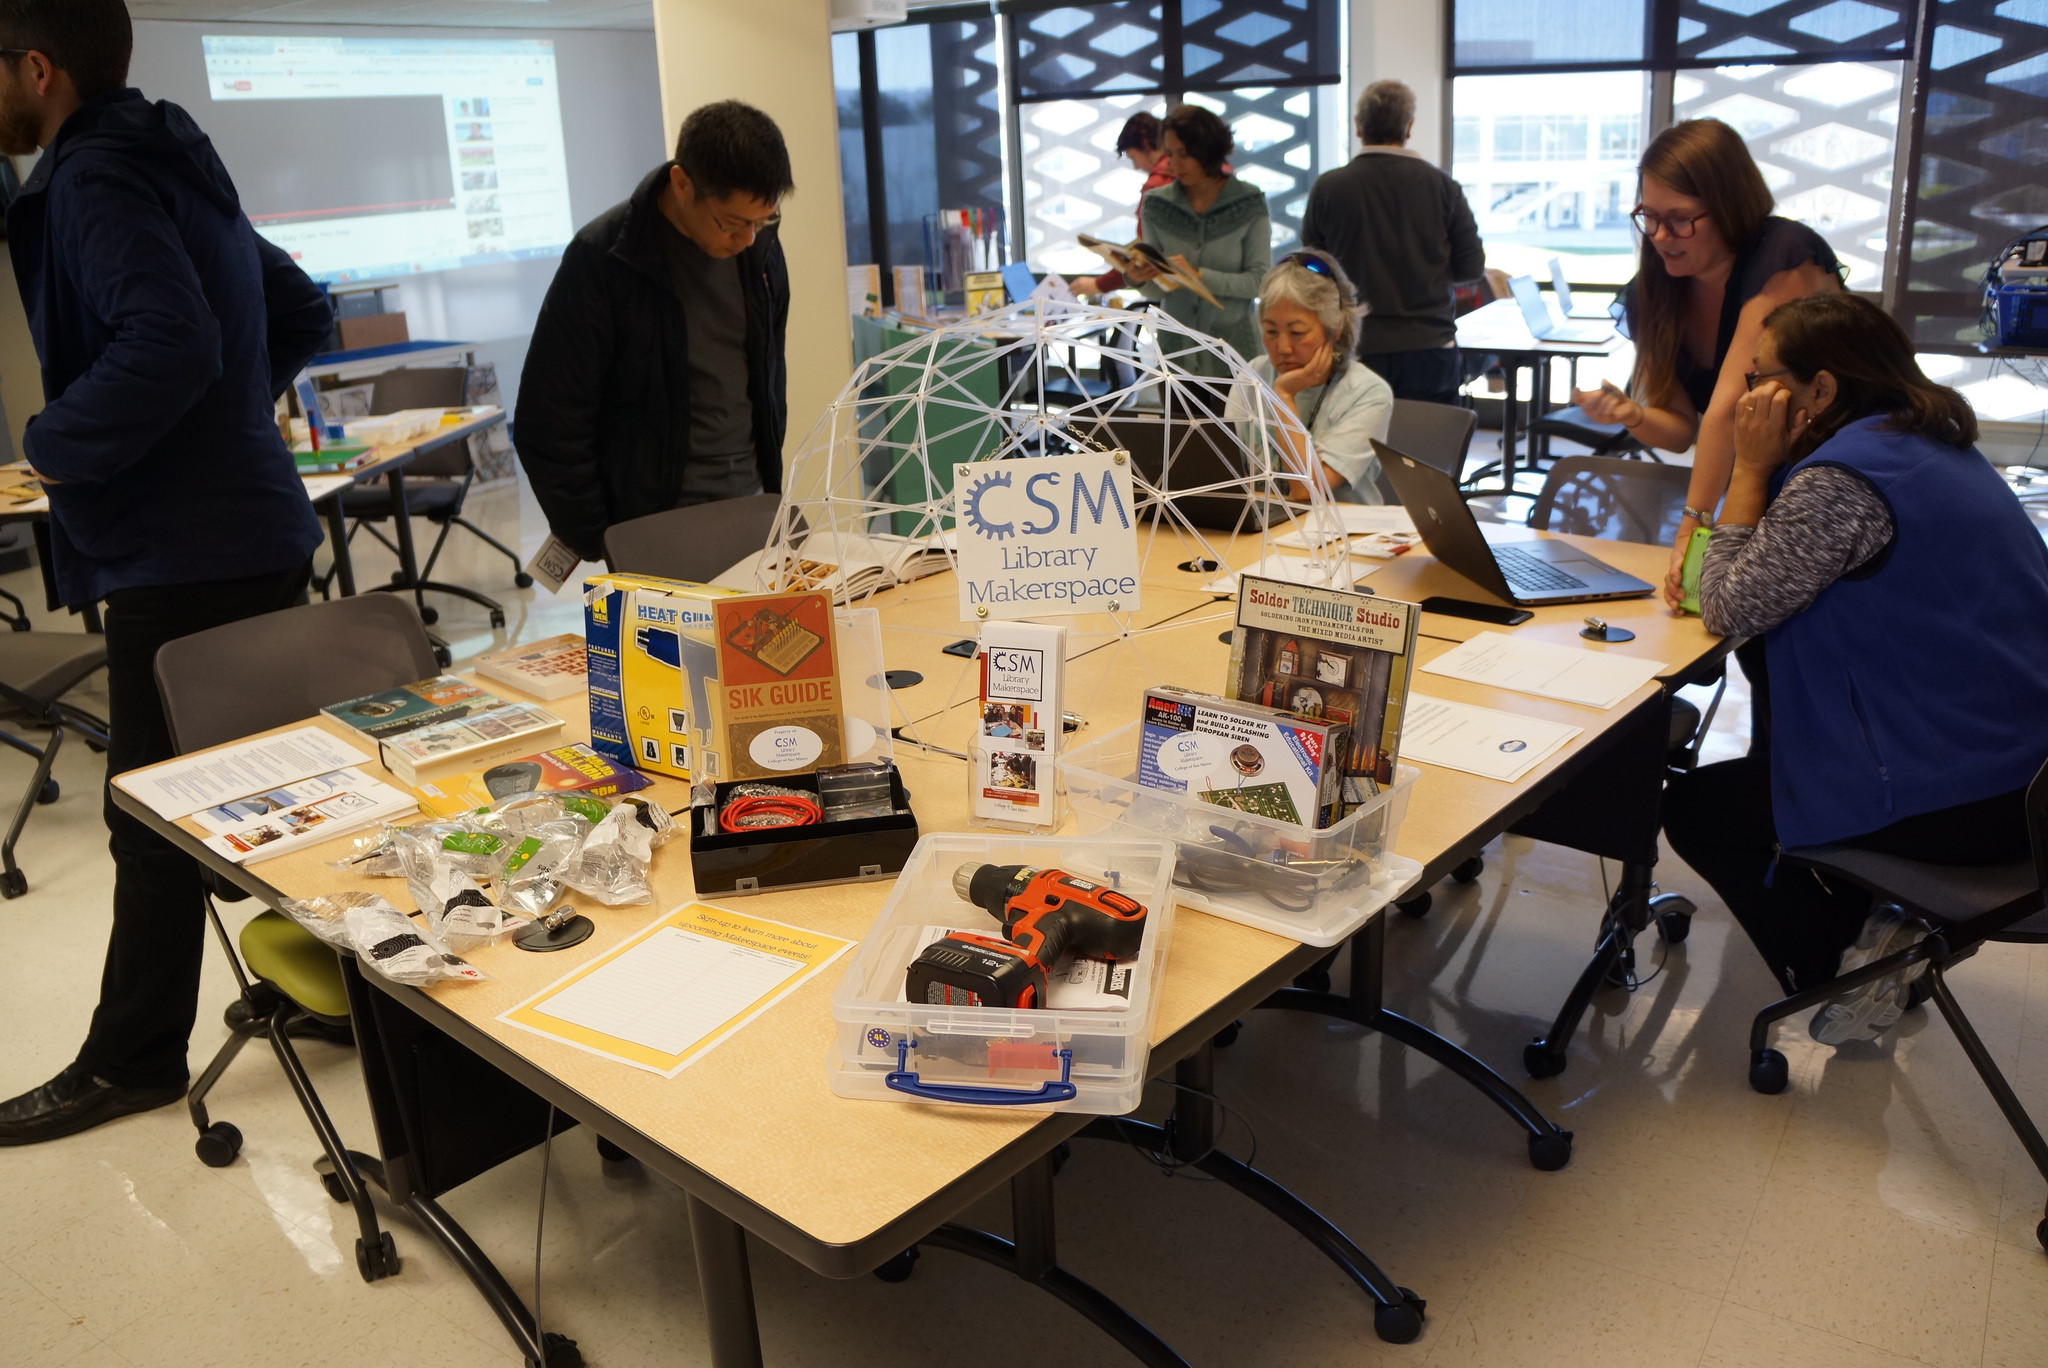 Founding a Makerspace can be fun